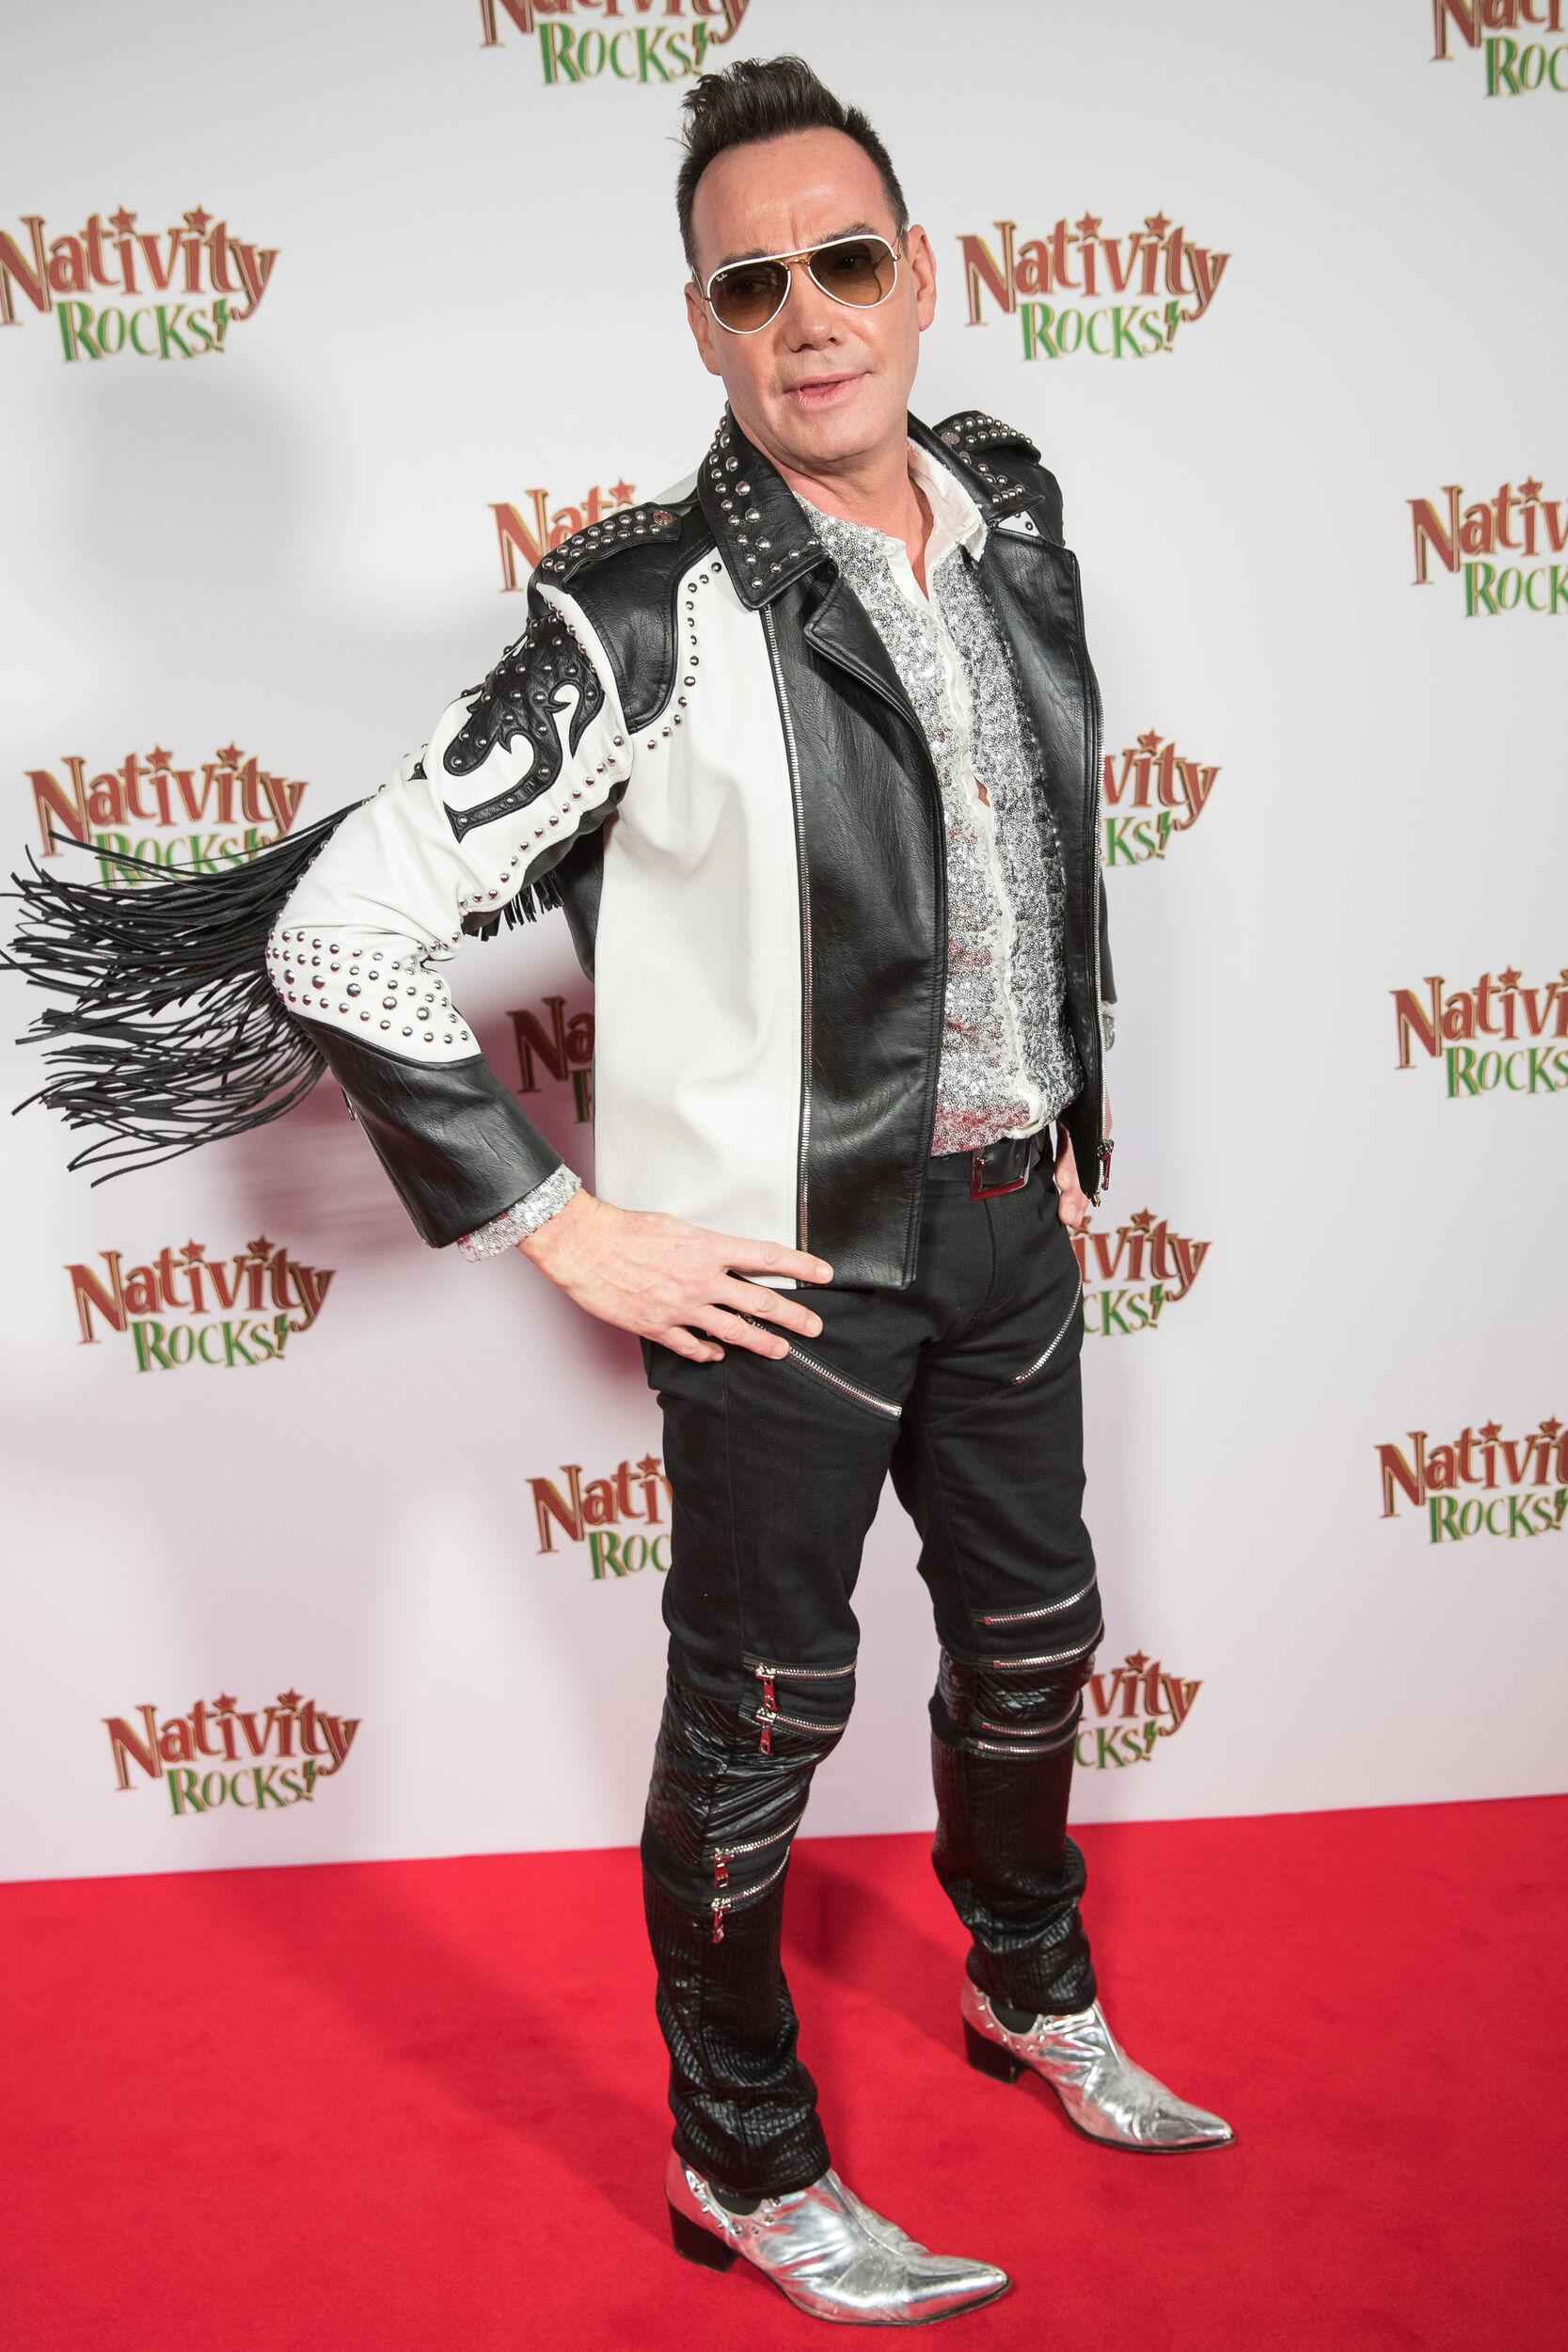 Craig Revel Horwood arrives at the premiere of Nativity Rocks! at the Odeon Skydome in Coventry.